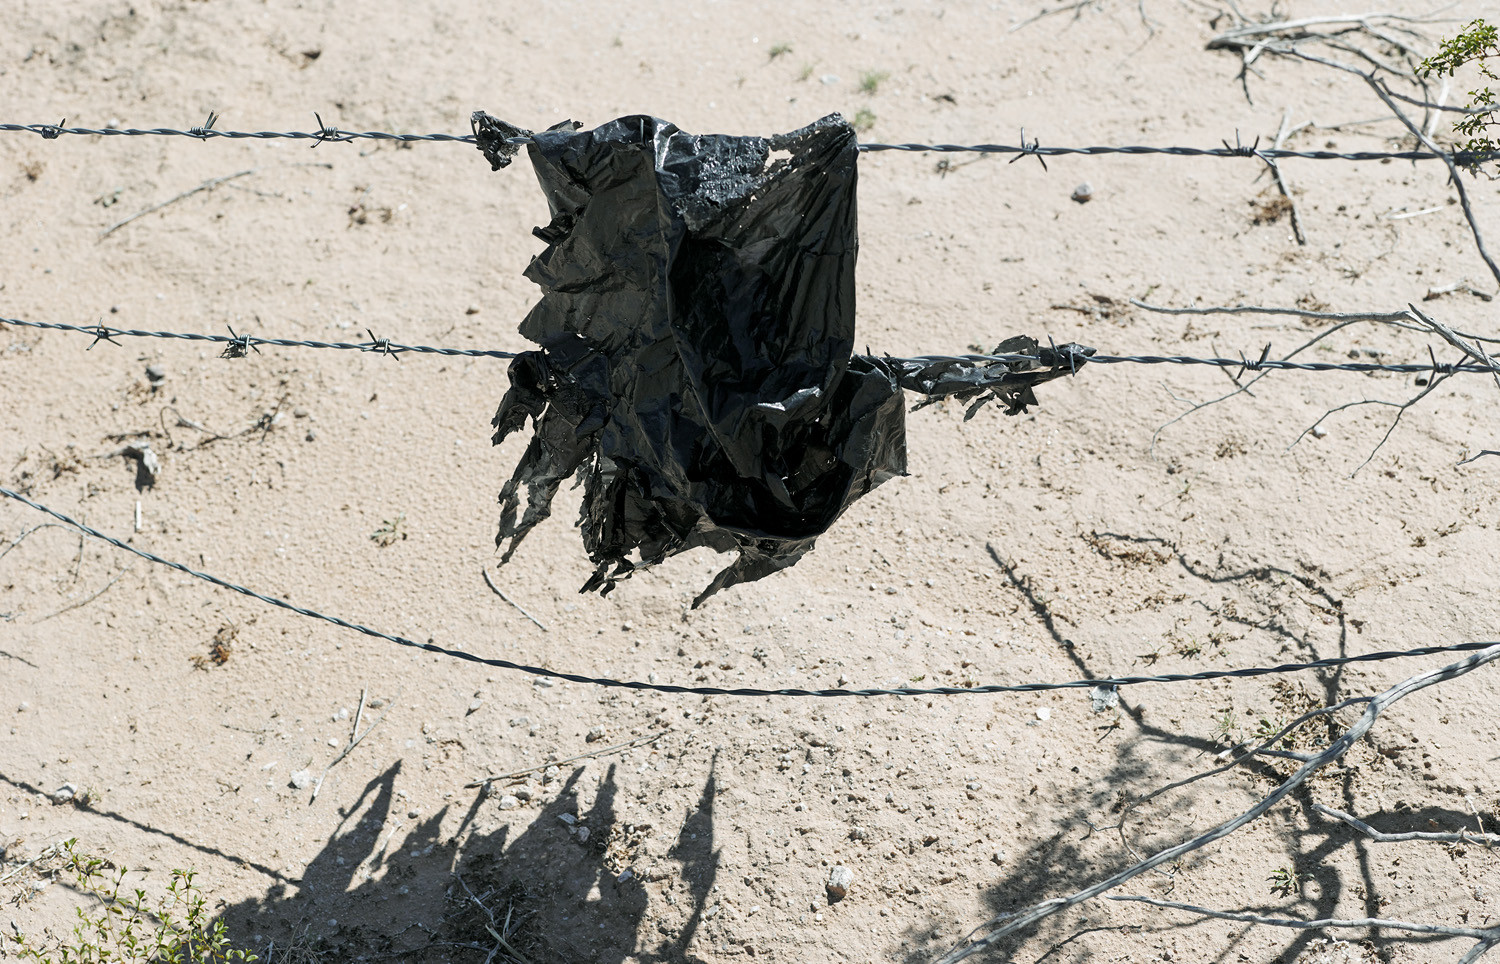 Mark Klett, Wind-tattered bag caught on barbed wire, 2013